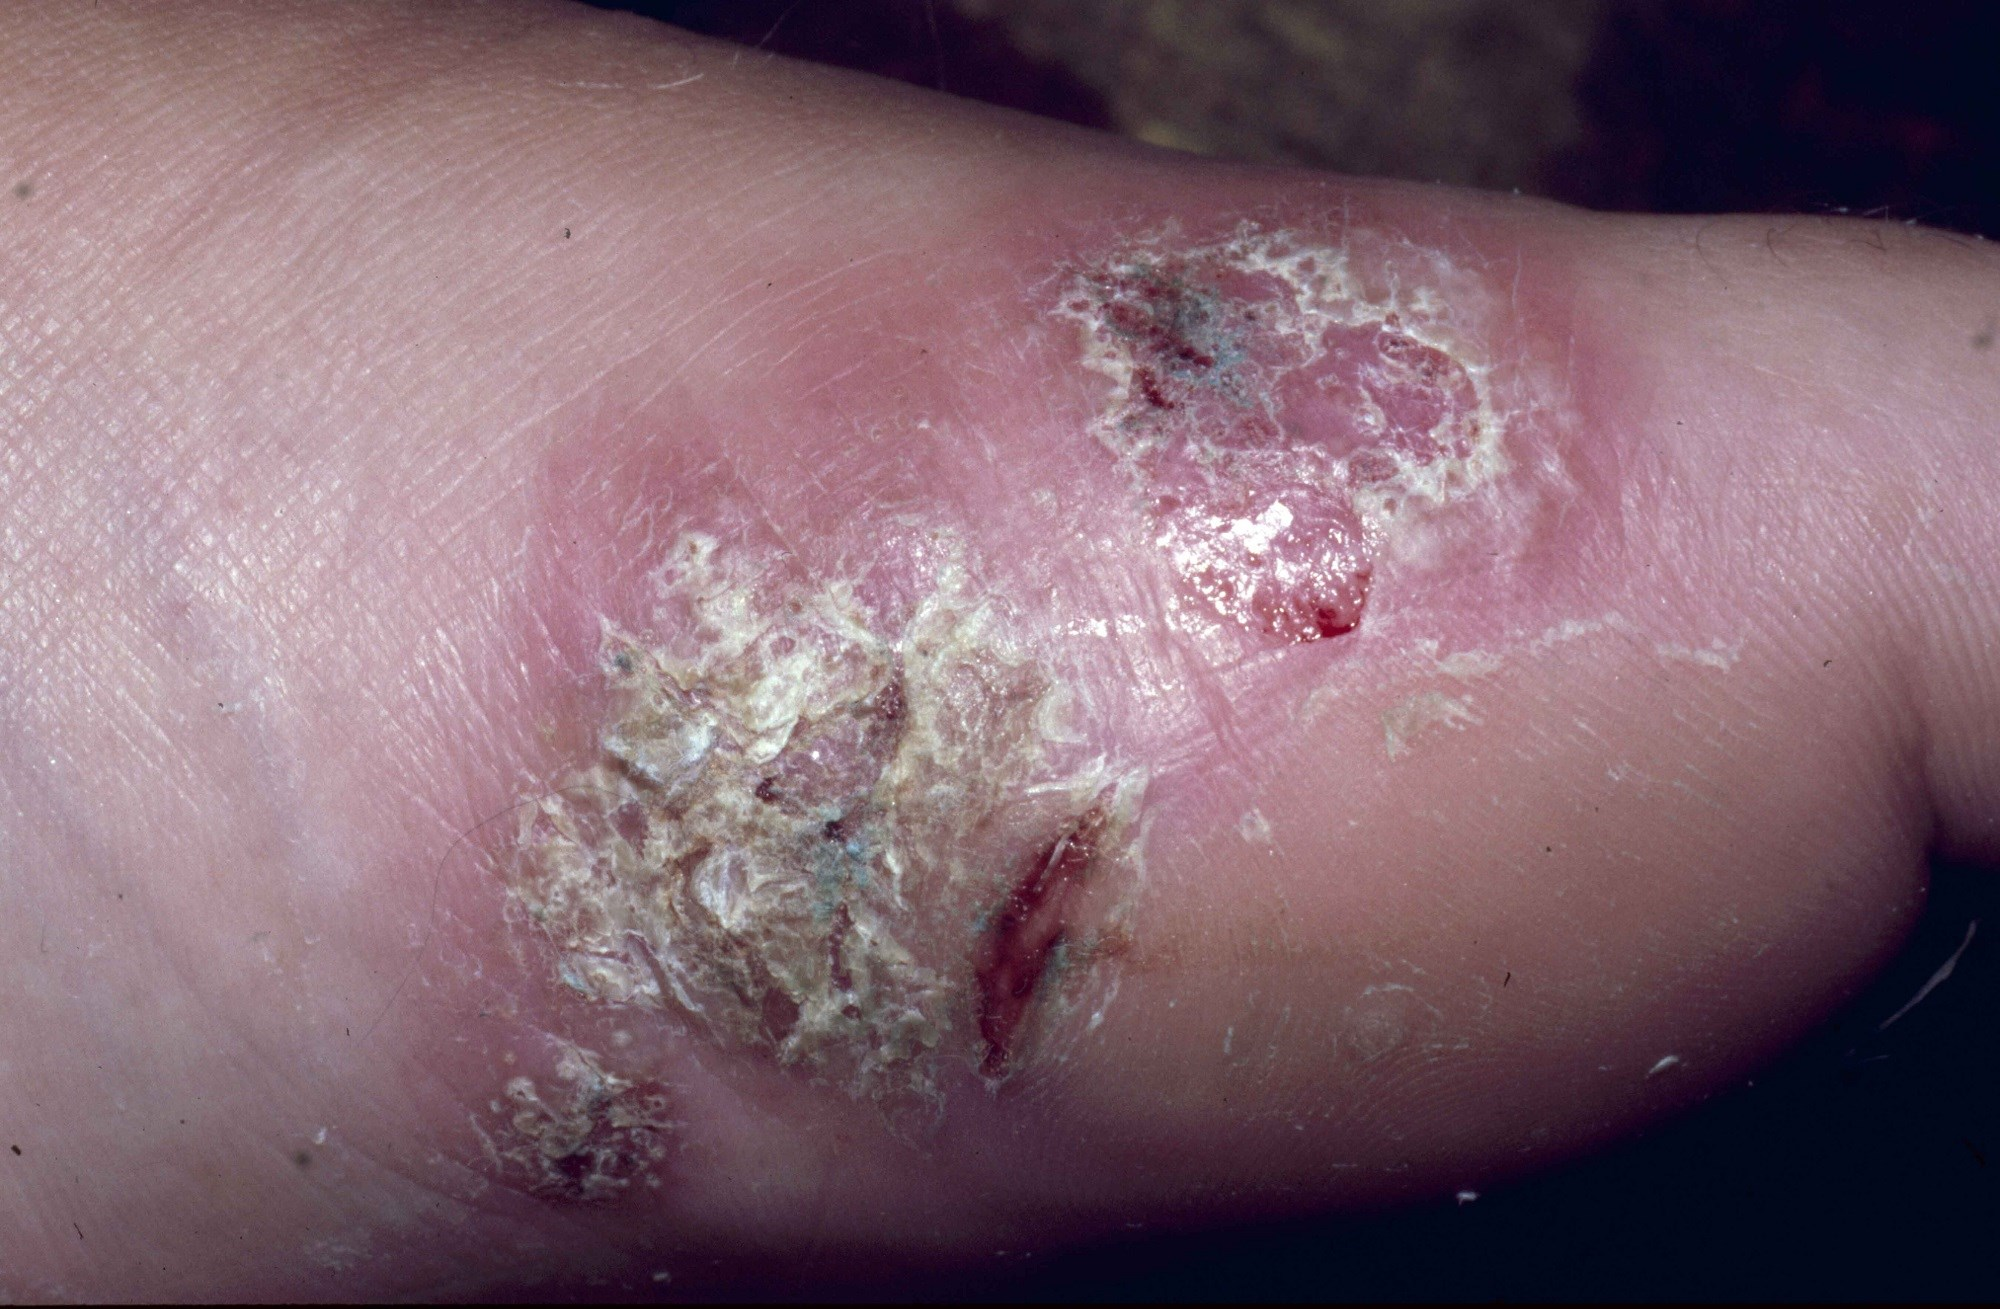 Managing Infection Risk in Psoriasis: Expert Q&A